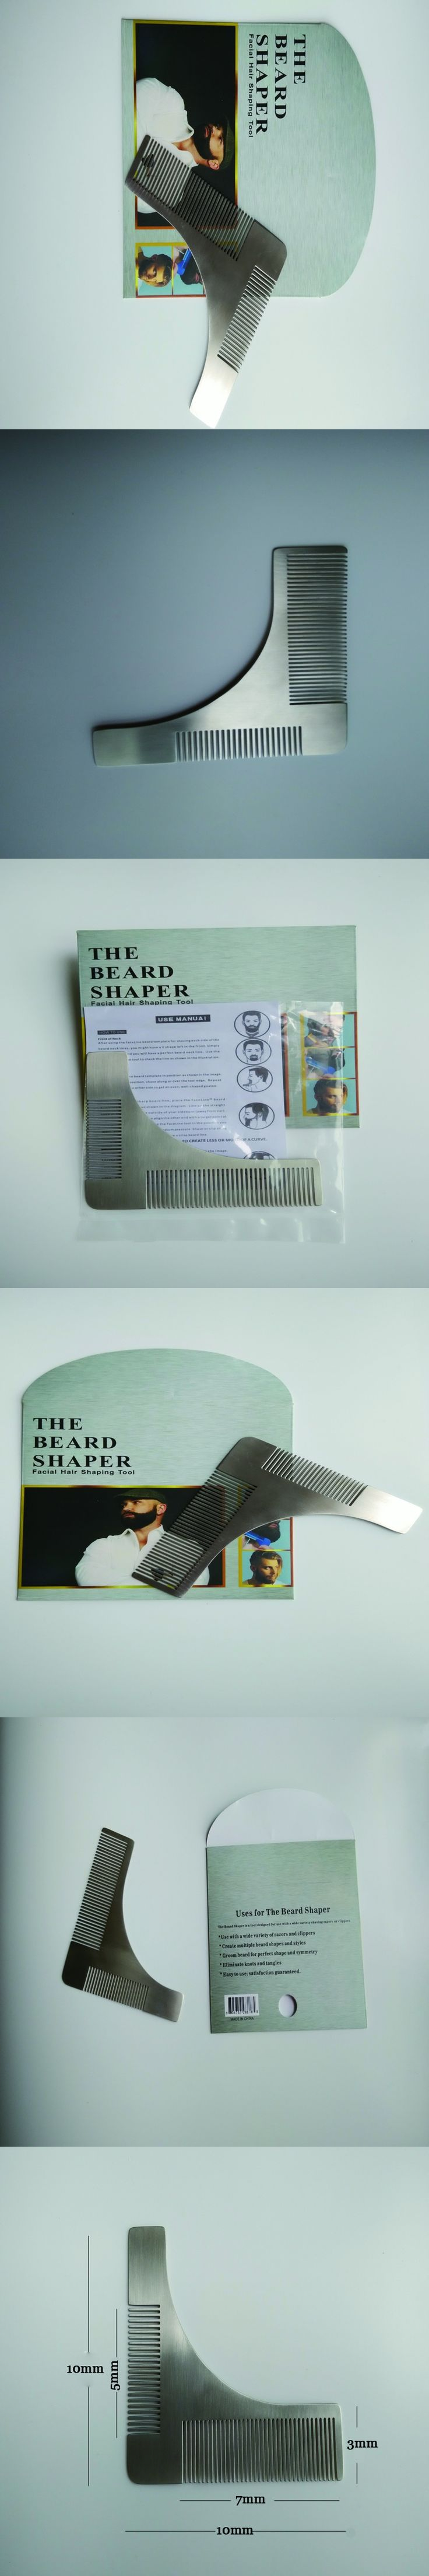 Brand licensing Top Stainless Beard Shaping Comb Shaving trimmer with Customization Support for Cool Guys